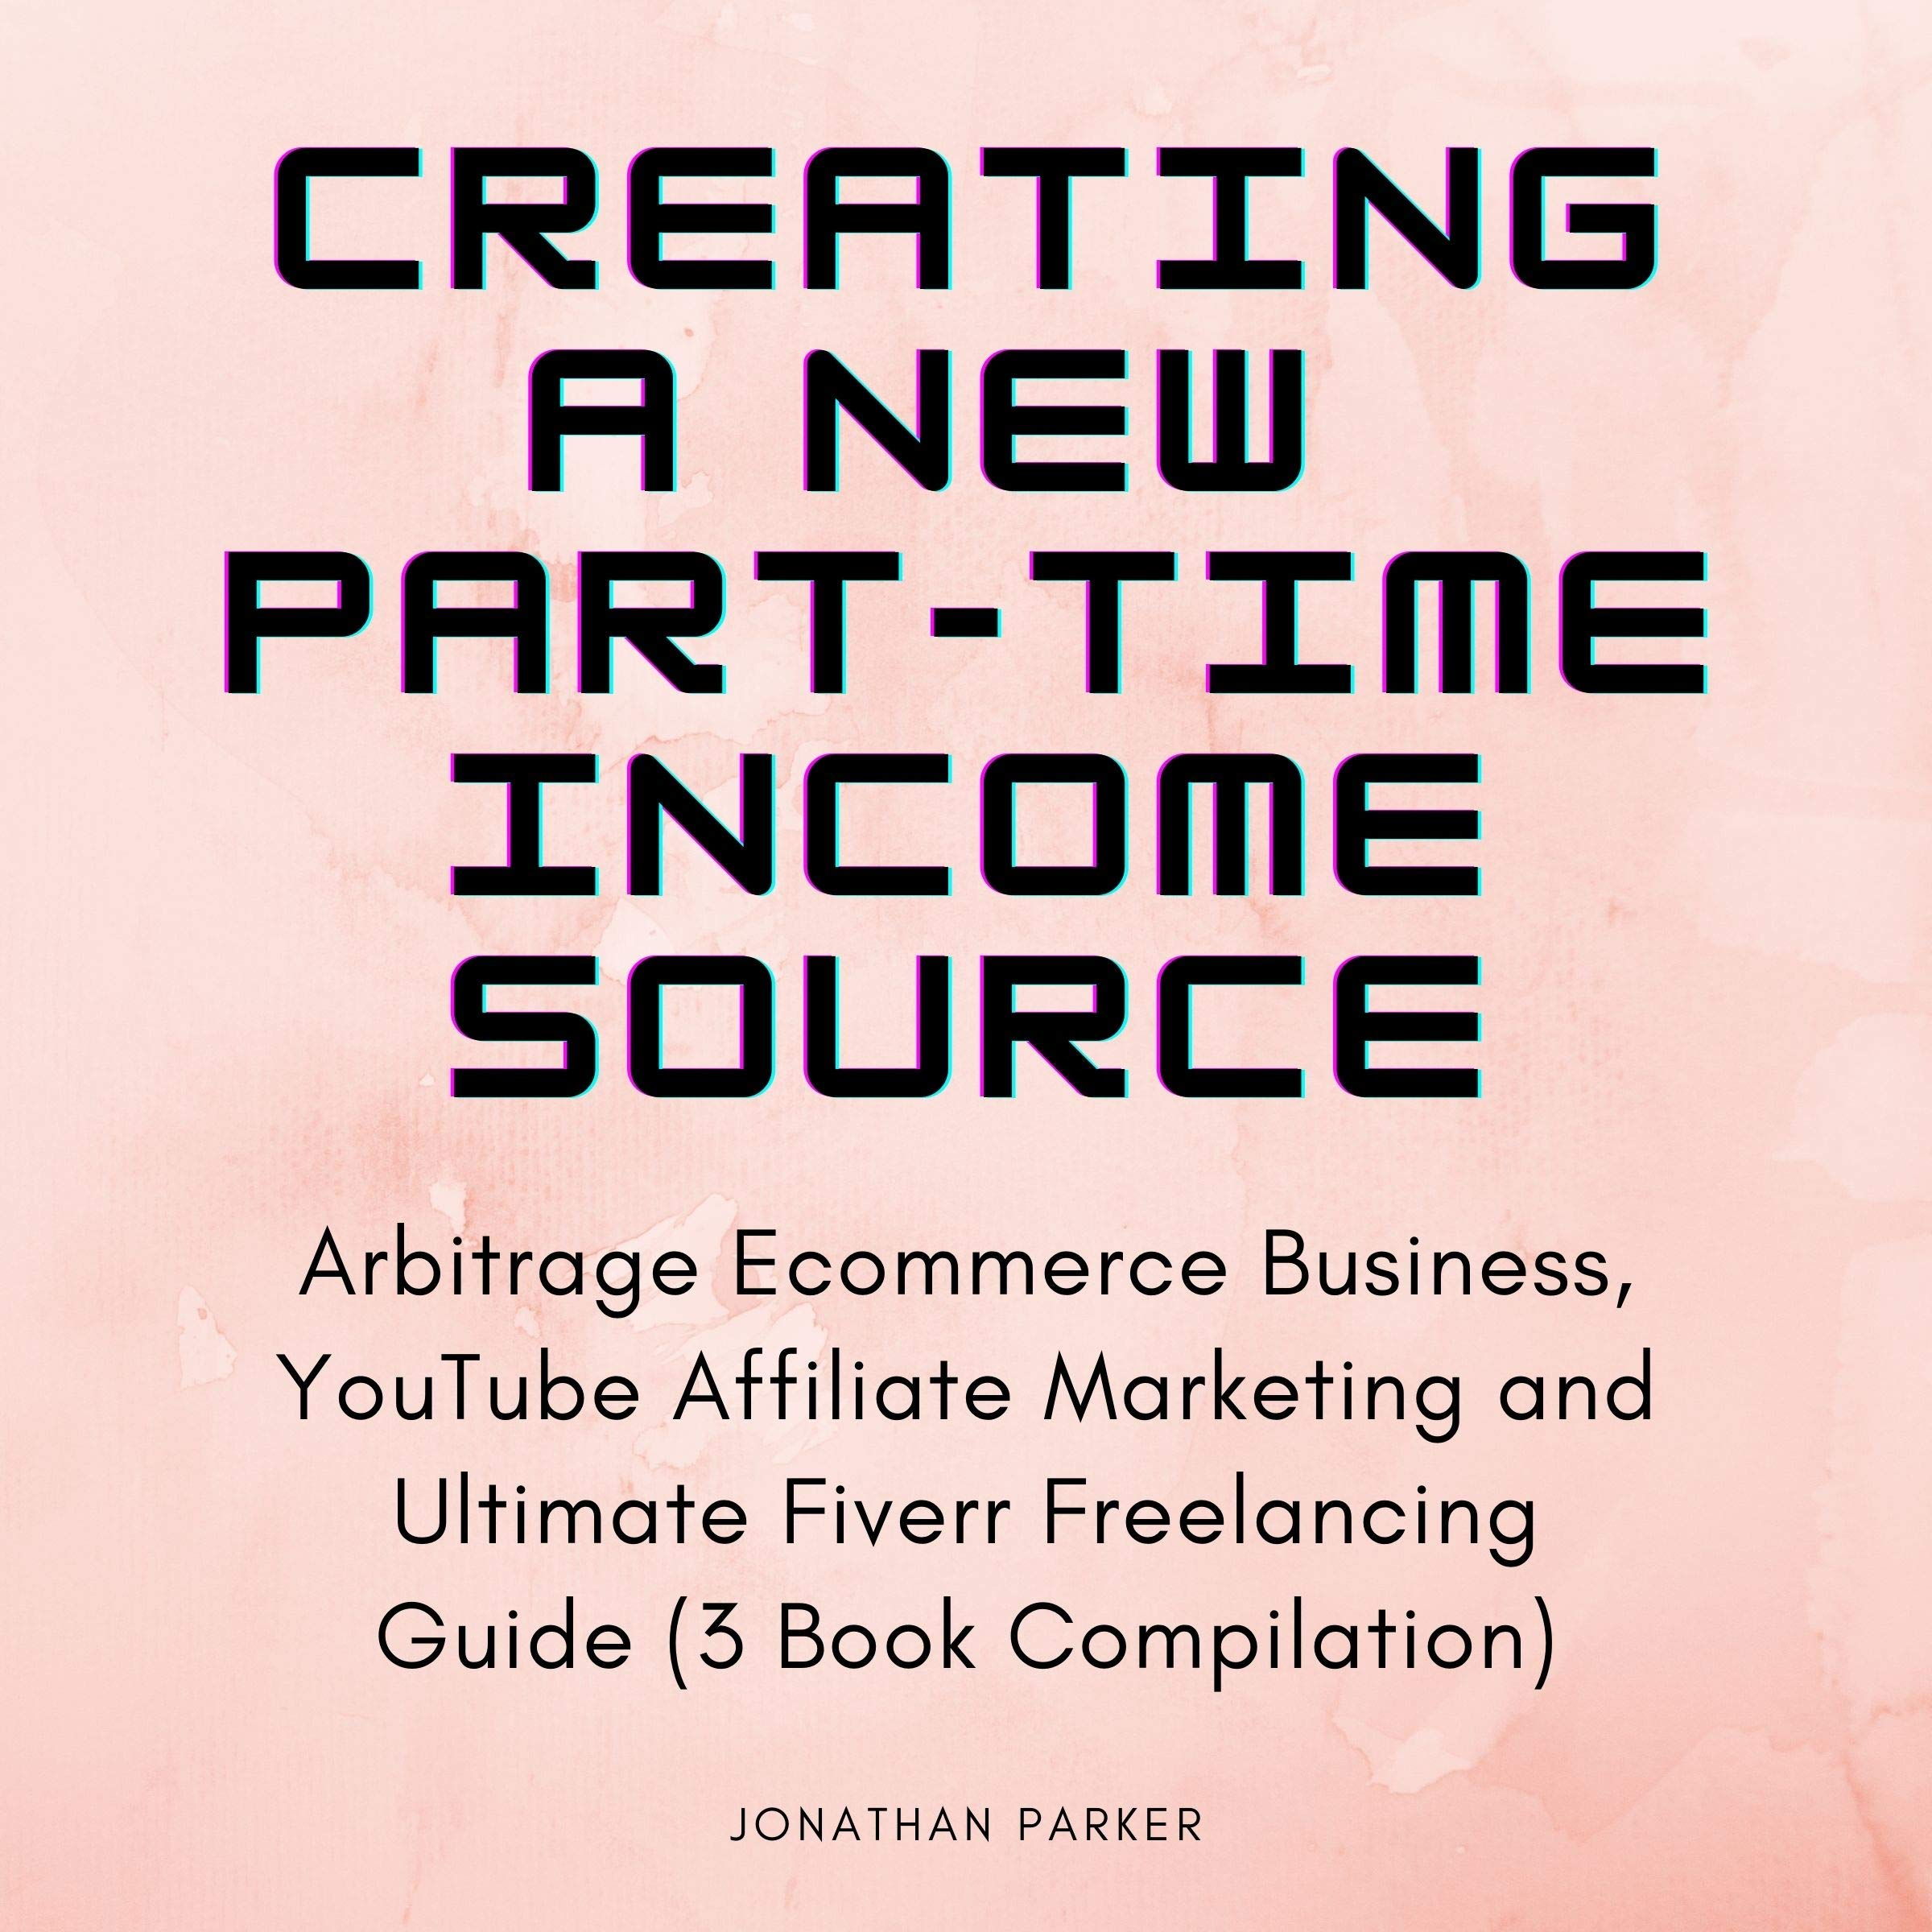 Creating a New Part-Time Income Source: Arbitrage Ecommerce Business, YouTube Affiliate Marketing and Ultimate Fiverr Freelancing Guide (3 Book Compilation)